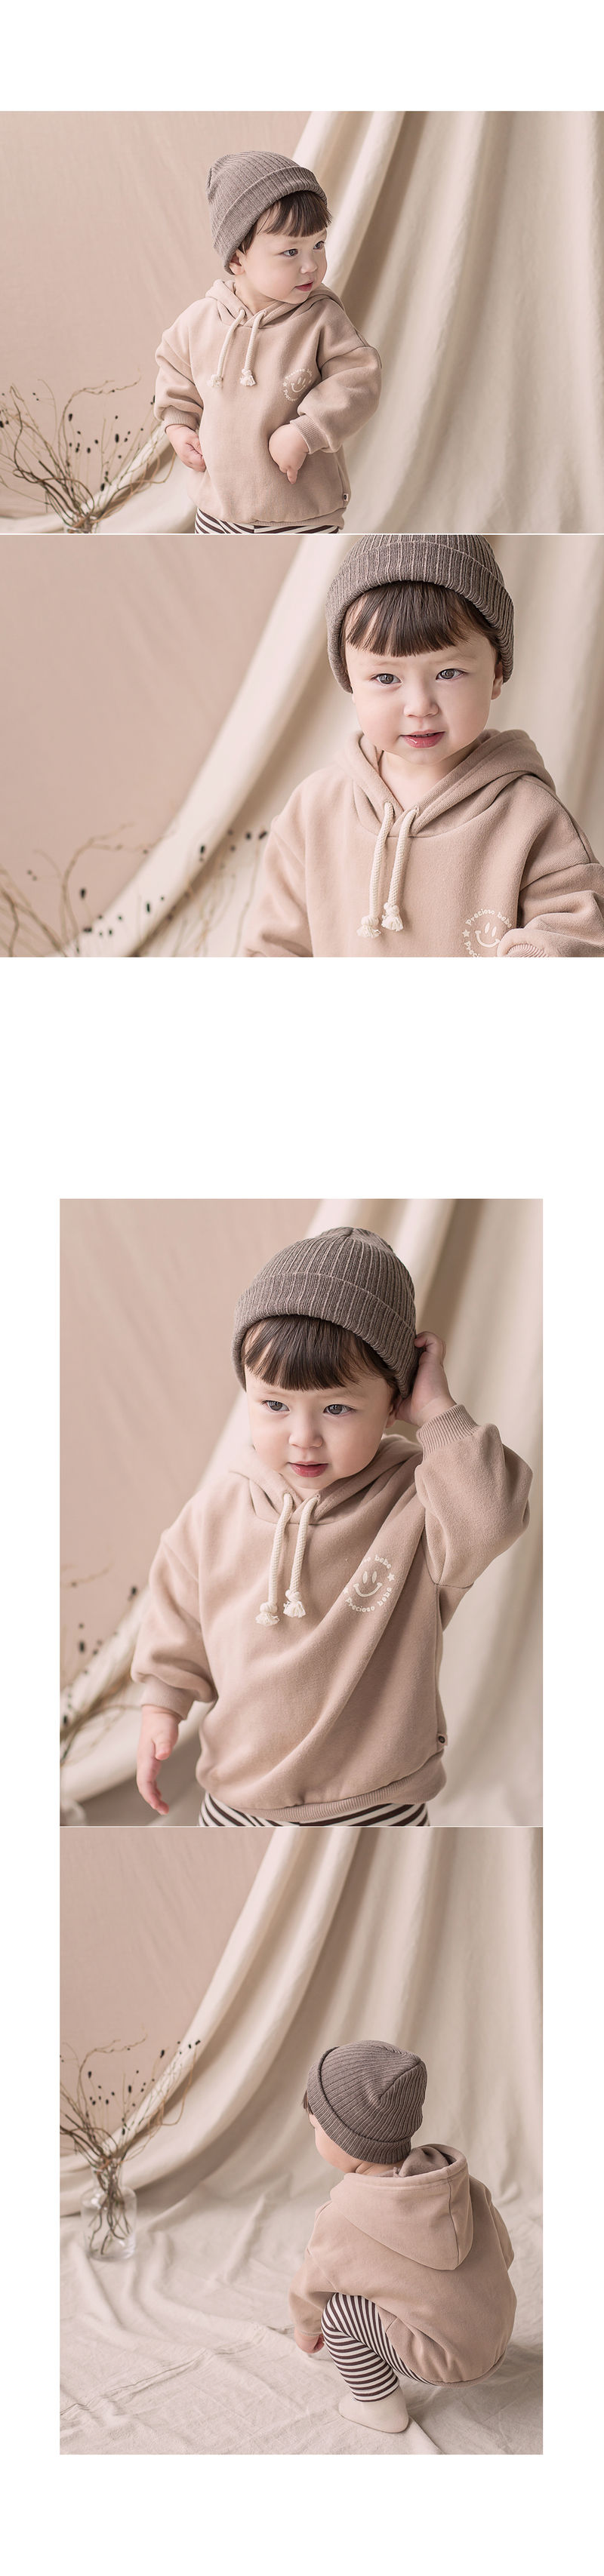 HAPPY PRINCE - Korean Children Fashion - #Kfashion4kids - Kai Hood Fleece Lined Sweatshirt - 3